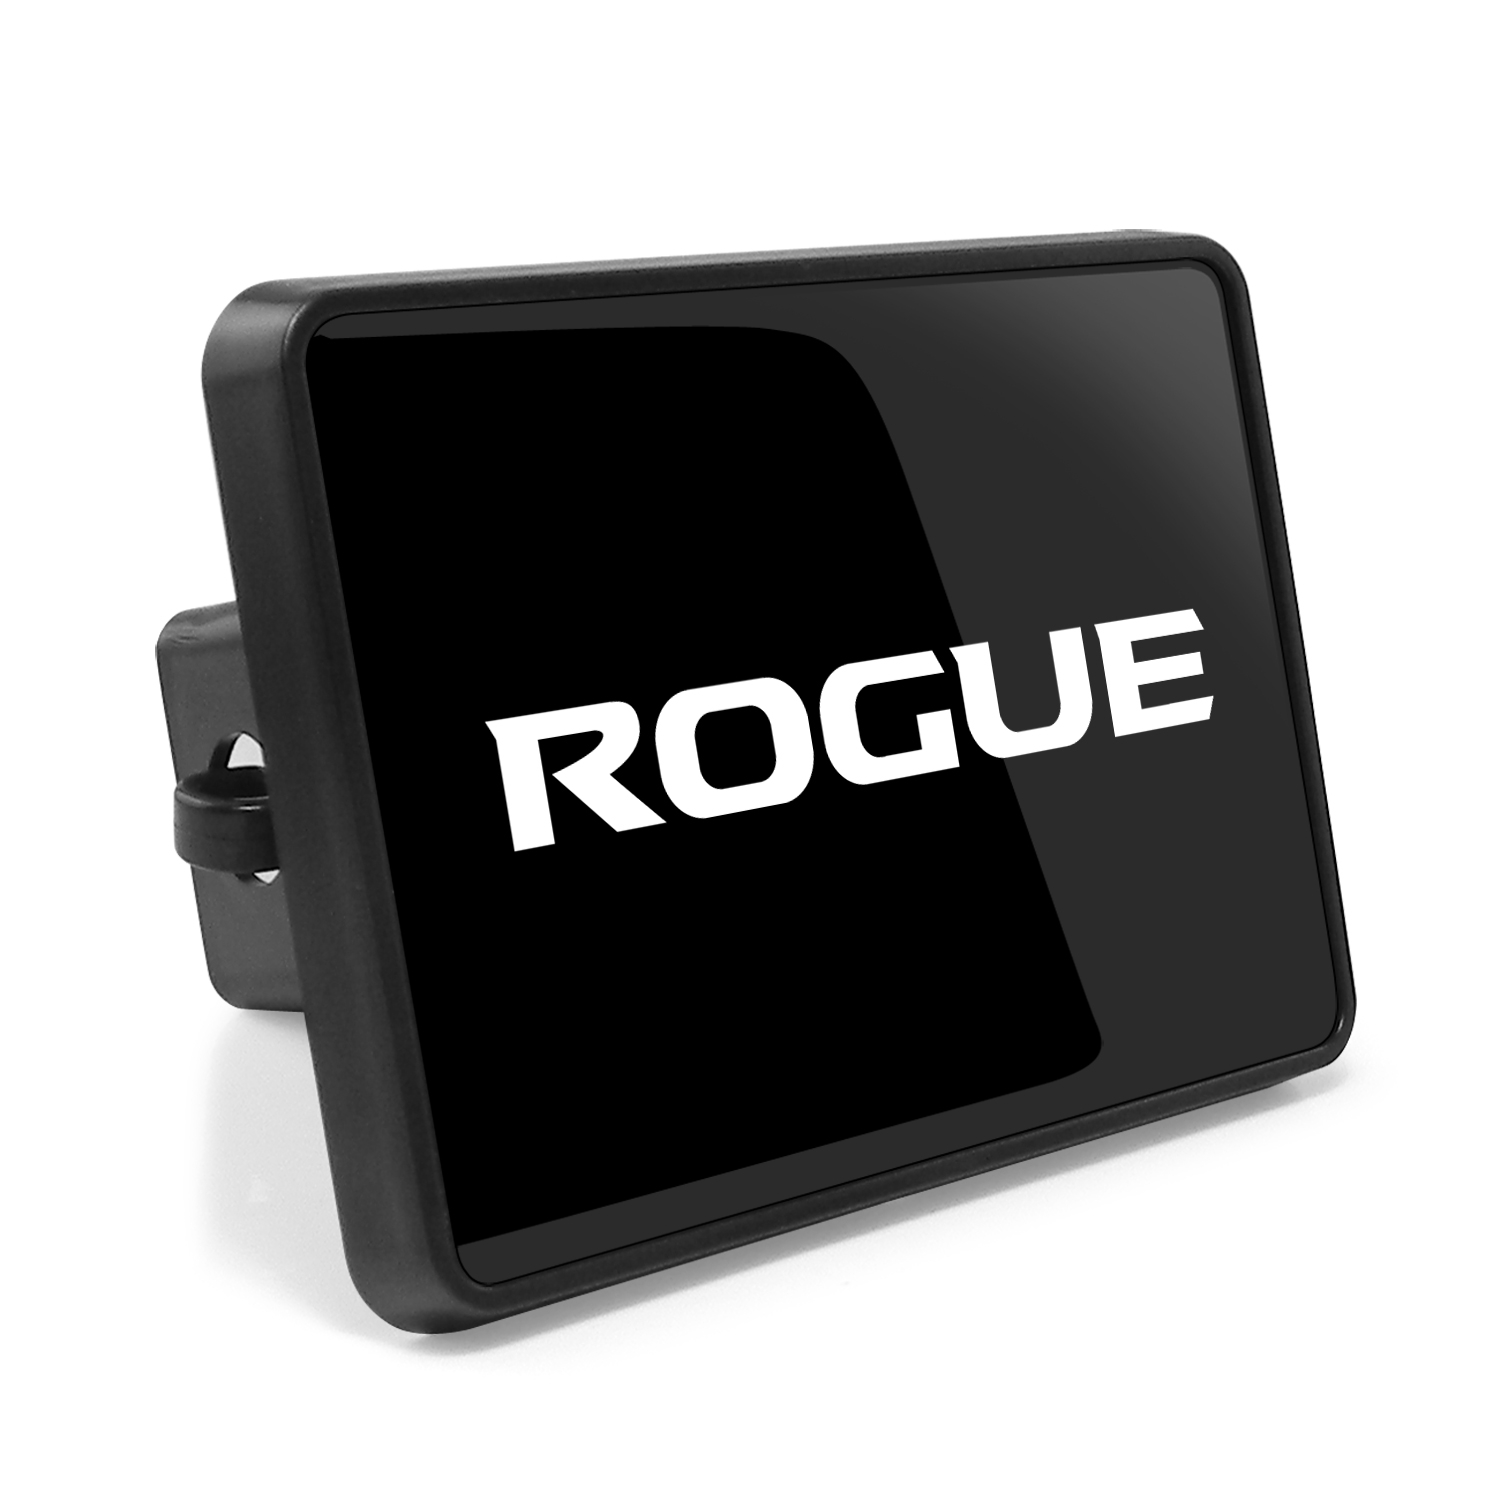 Nissan Rogue UV Graphic Black ABS Plastic 2 inch Trailer Hitch Cover